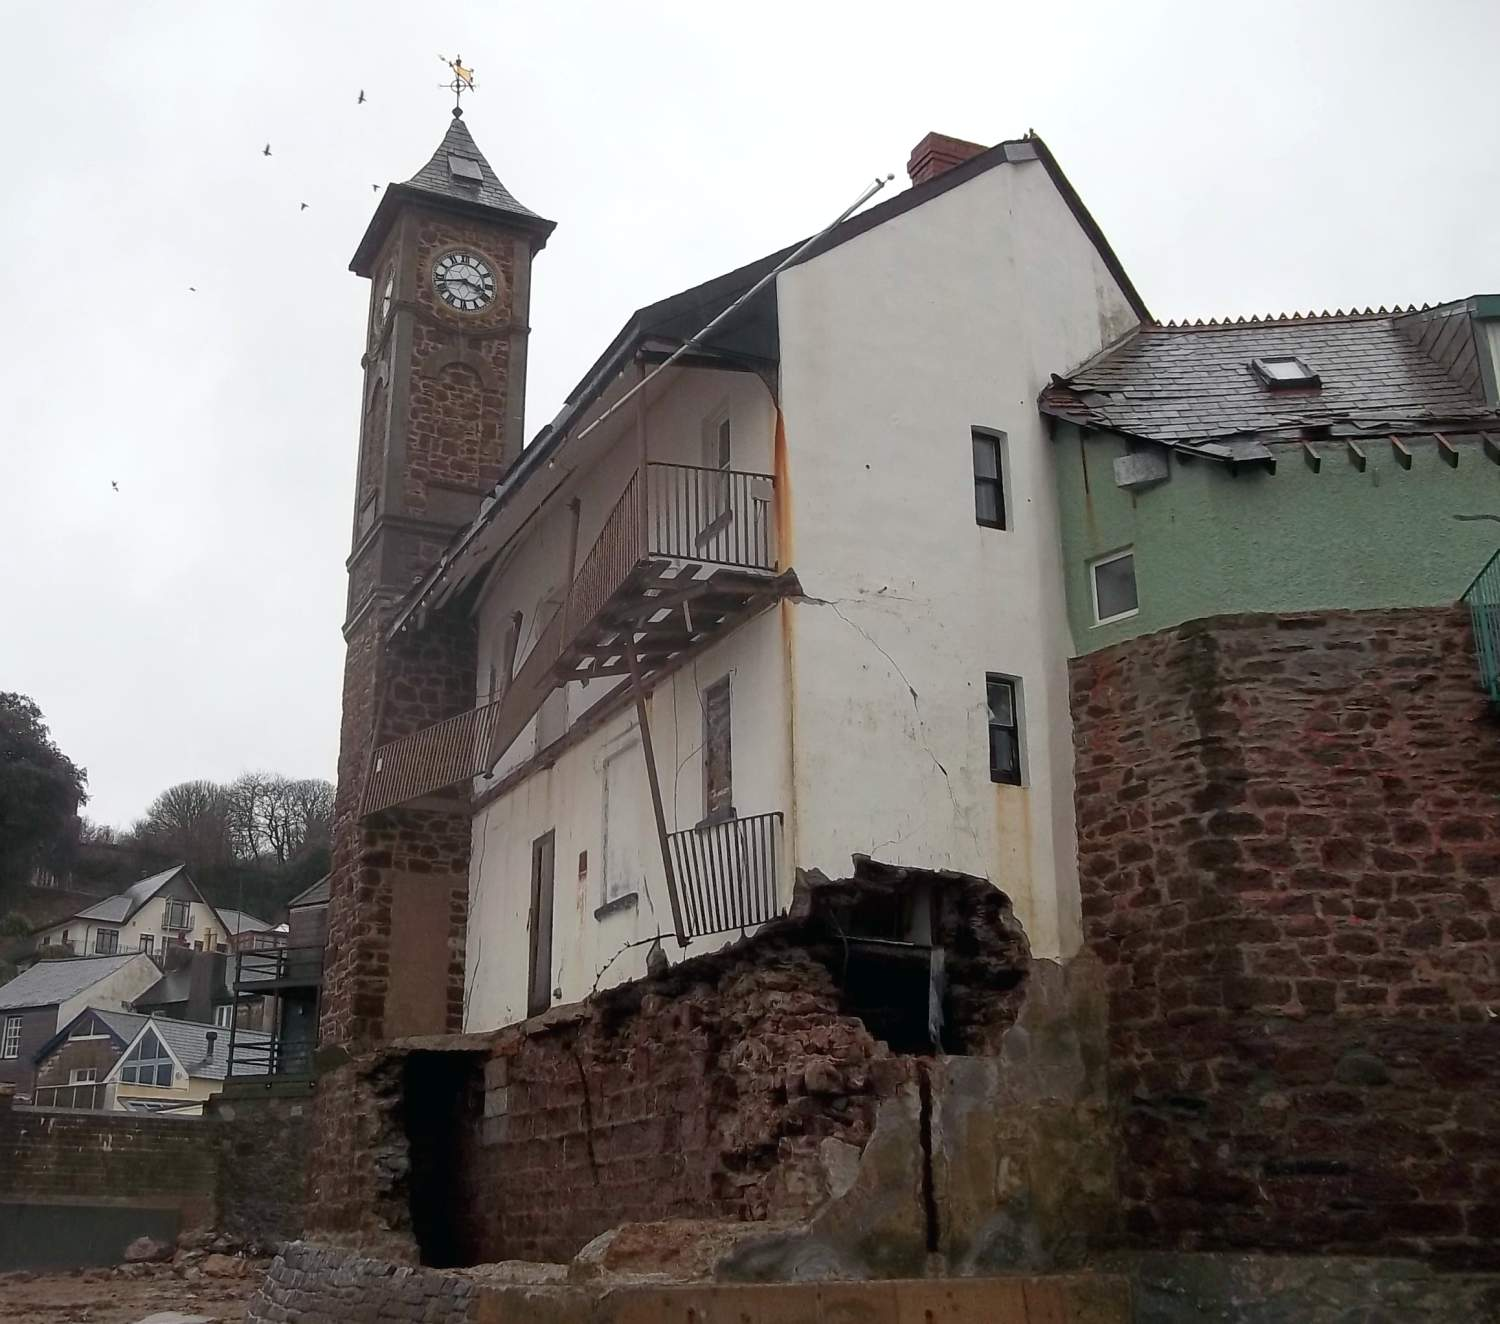 Kingsand Clock Tower and Institute Building, Cornwall